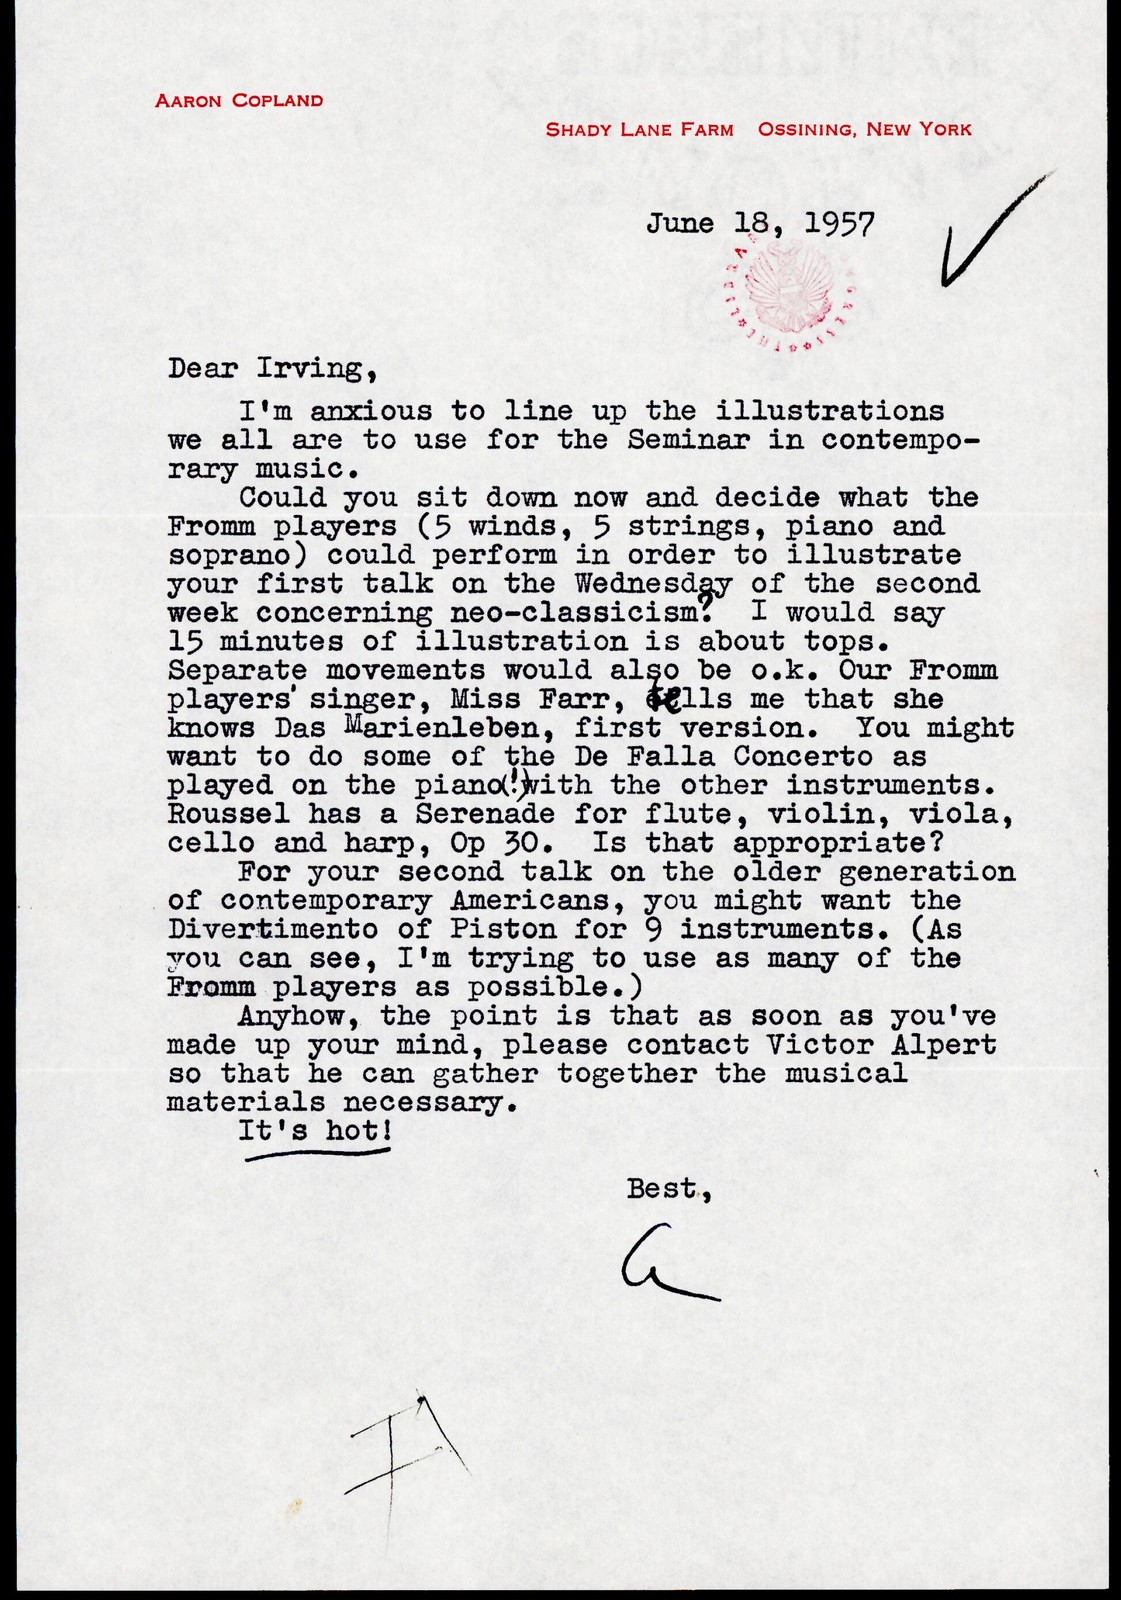 Letter from Aaron Copland to Irving Fine, June 18, 1957.